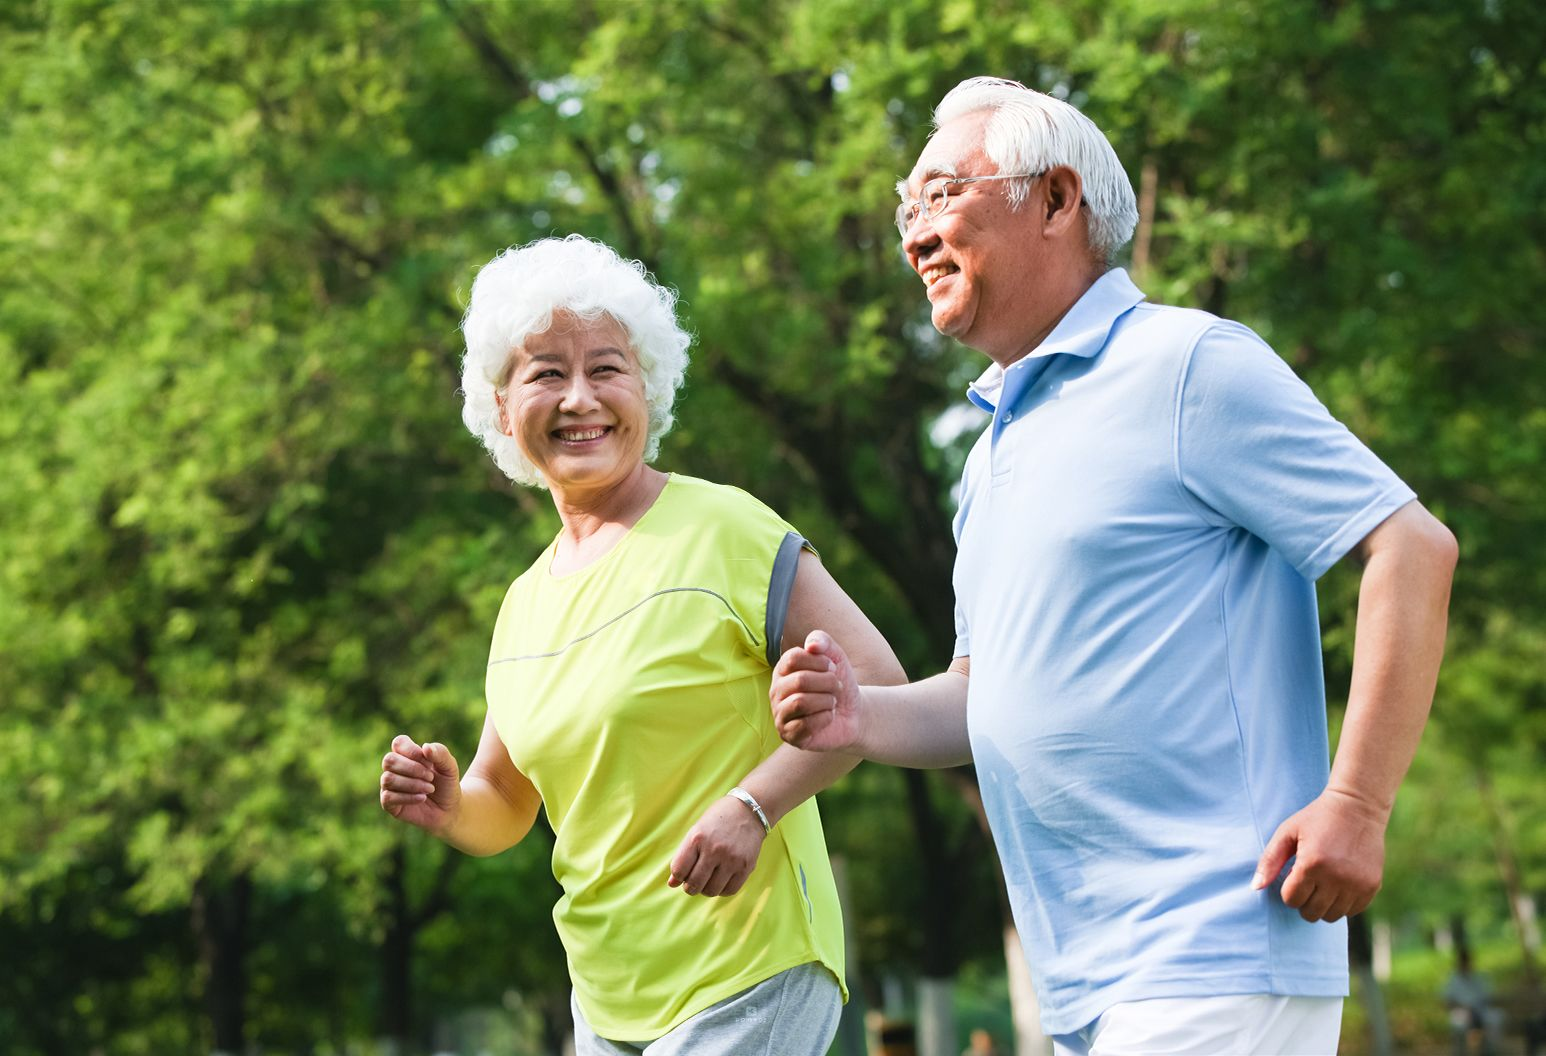 An older couple jogs in a park